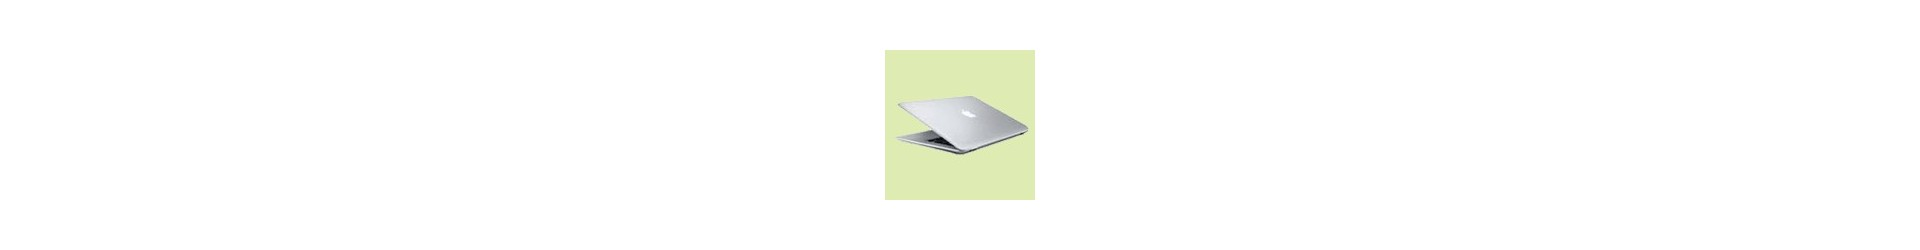 "MacBook Air 13"" (A1466/A1369)"